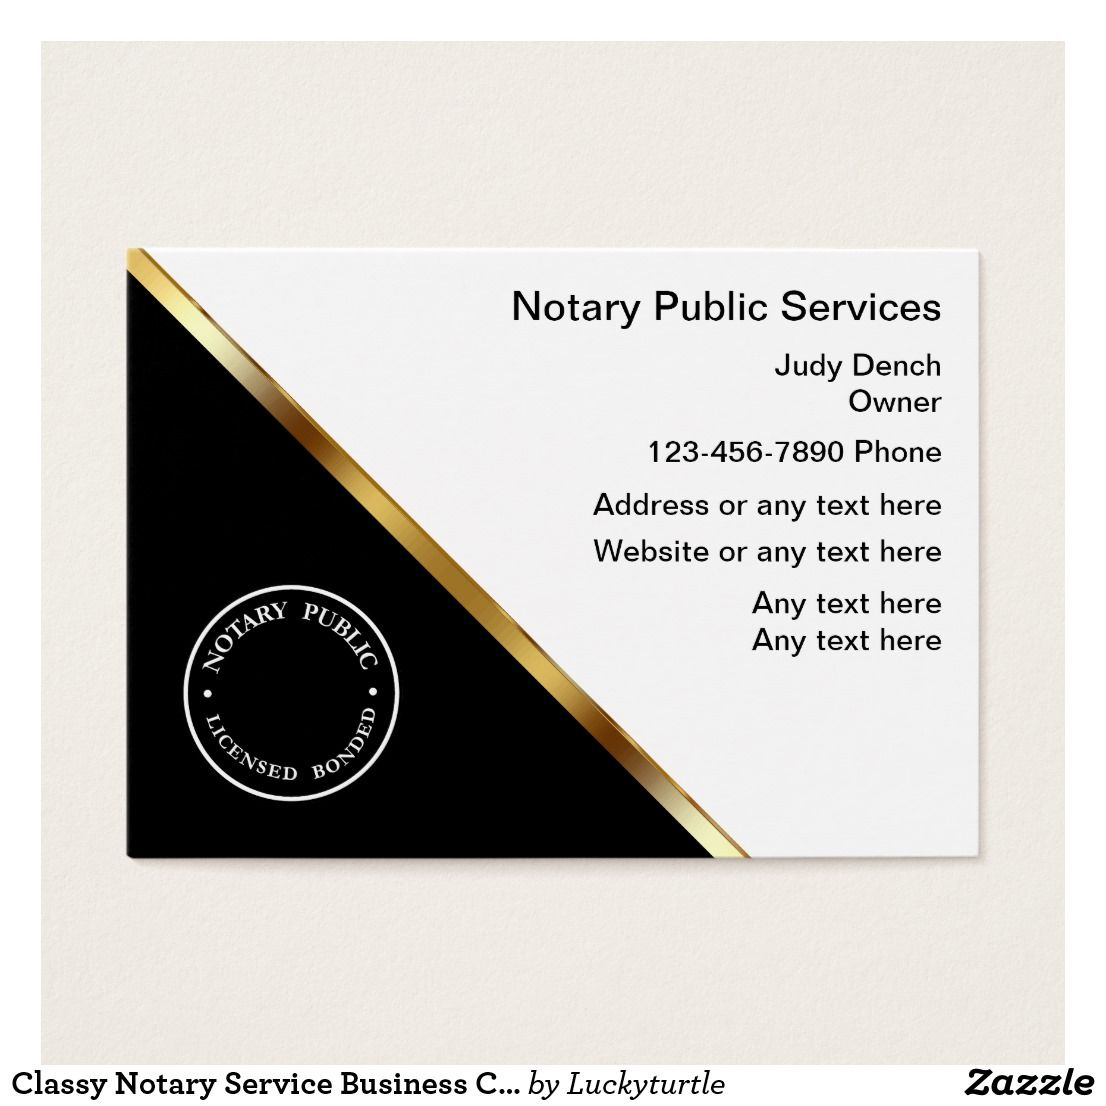 Classy Notary Service Business Cards Custom Check Out More Business Card Designs At Http Www Zazzle C Notary Service Services Business Notary Public Business